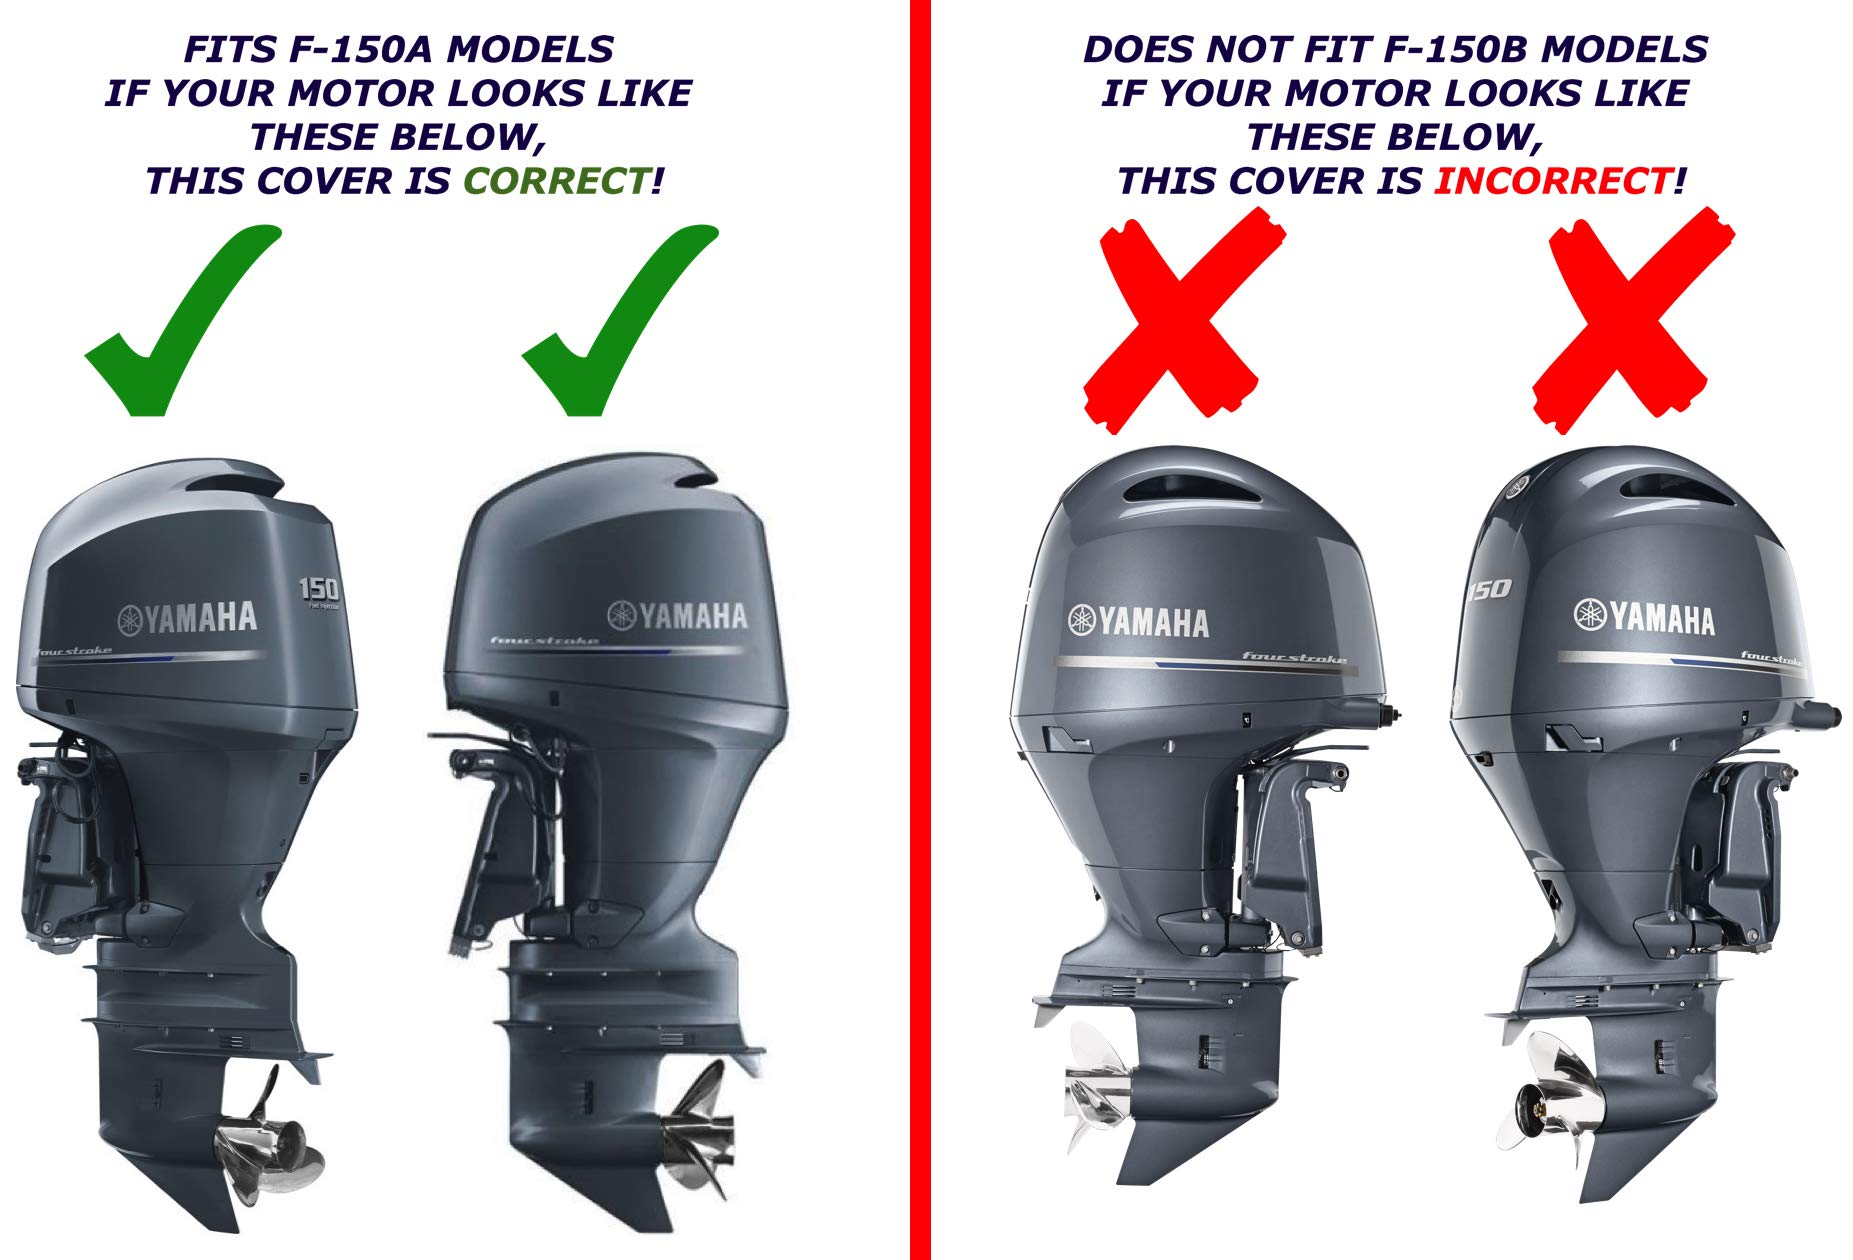 Yamaha OEM A-Model F150 Outboard Motor Cover (2013 and older) MAR-MTRCV-1C-15 by Yamaha